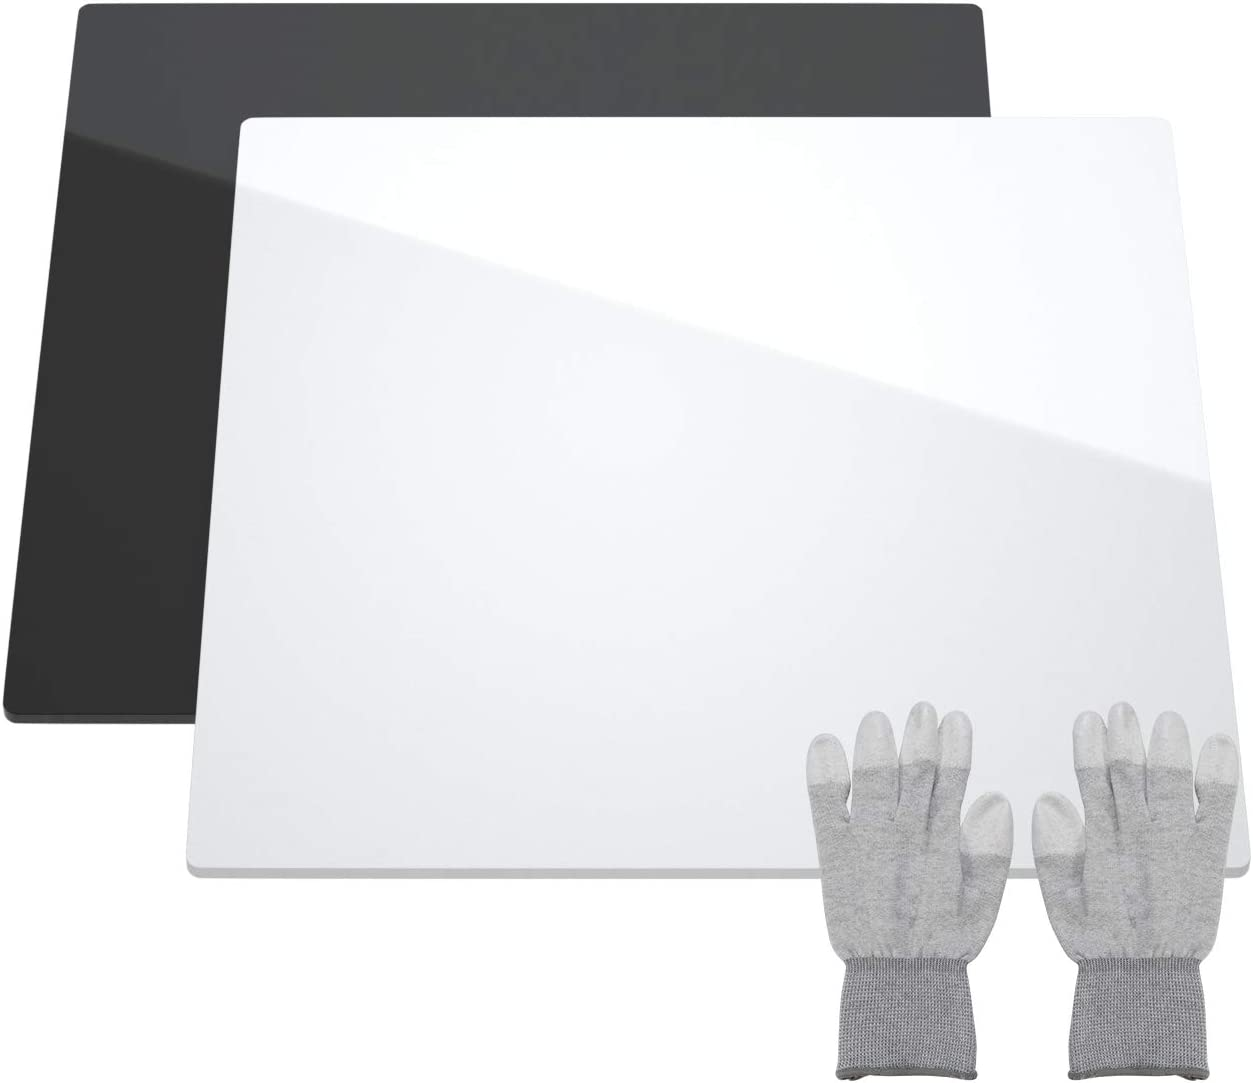 NIUBEE Acrylic Reflective Display Board for Photo Background Shooting Tables (12x12 Inch, Black + White)